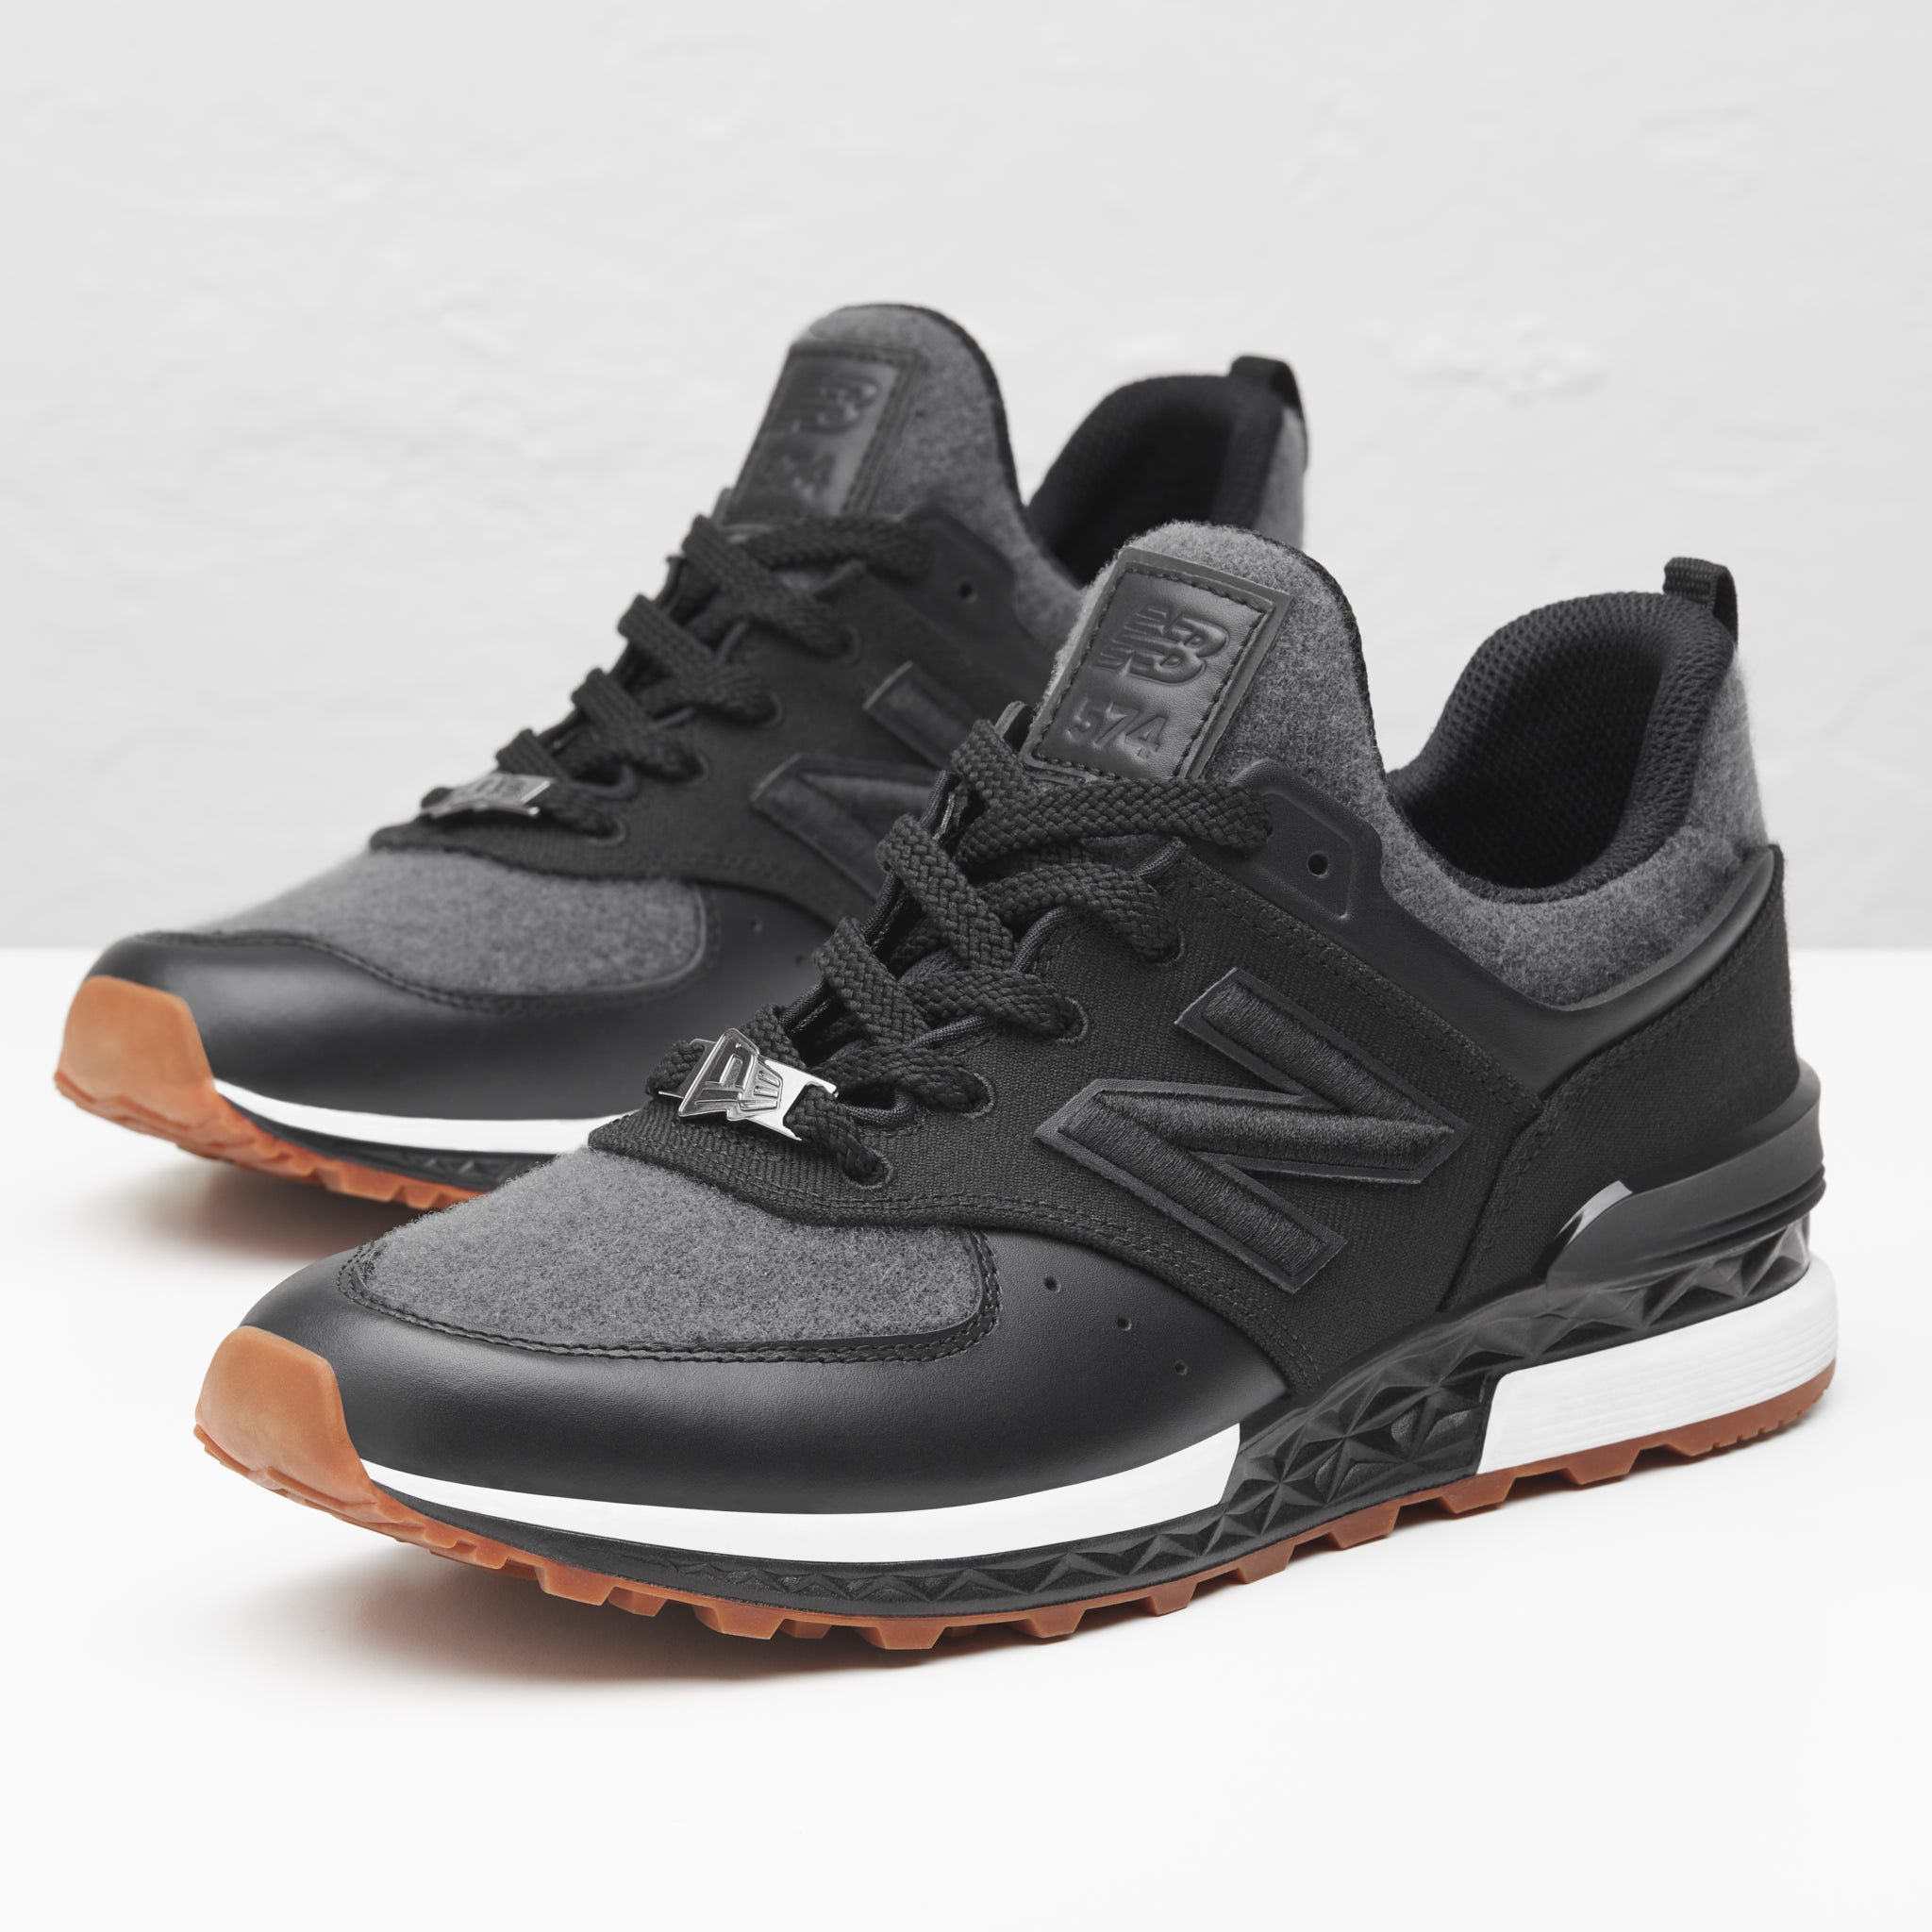 the best attitude ab418 40891 Two Iconic Streetwear Brands, New Era and New Balance Launch ...